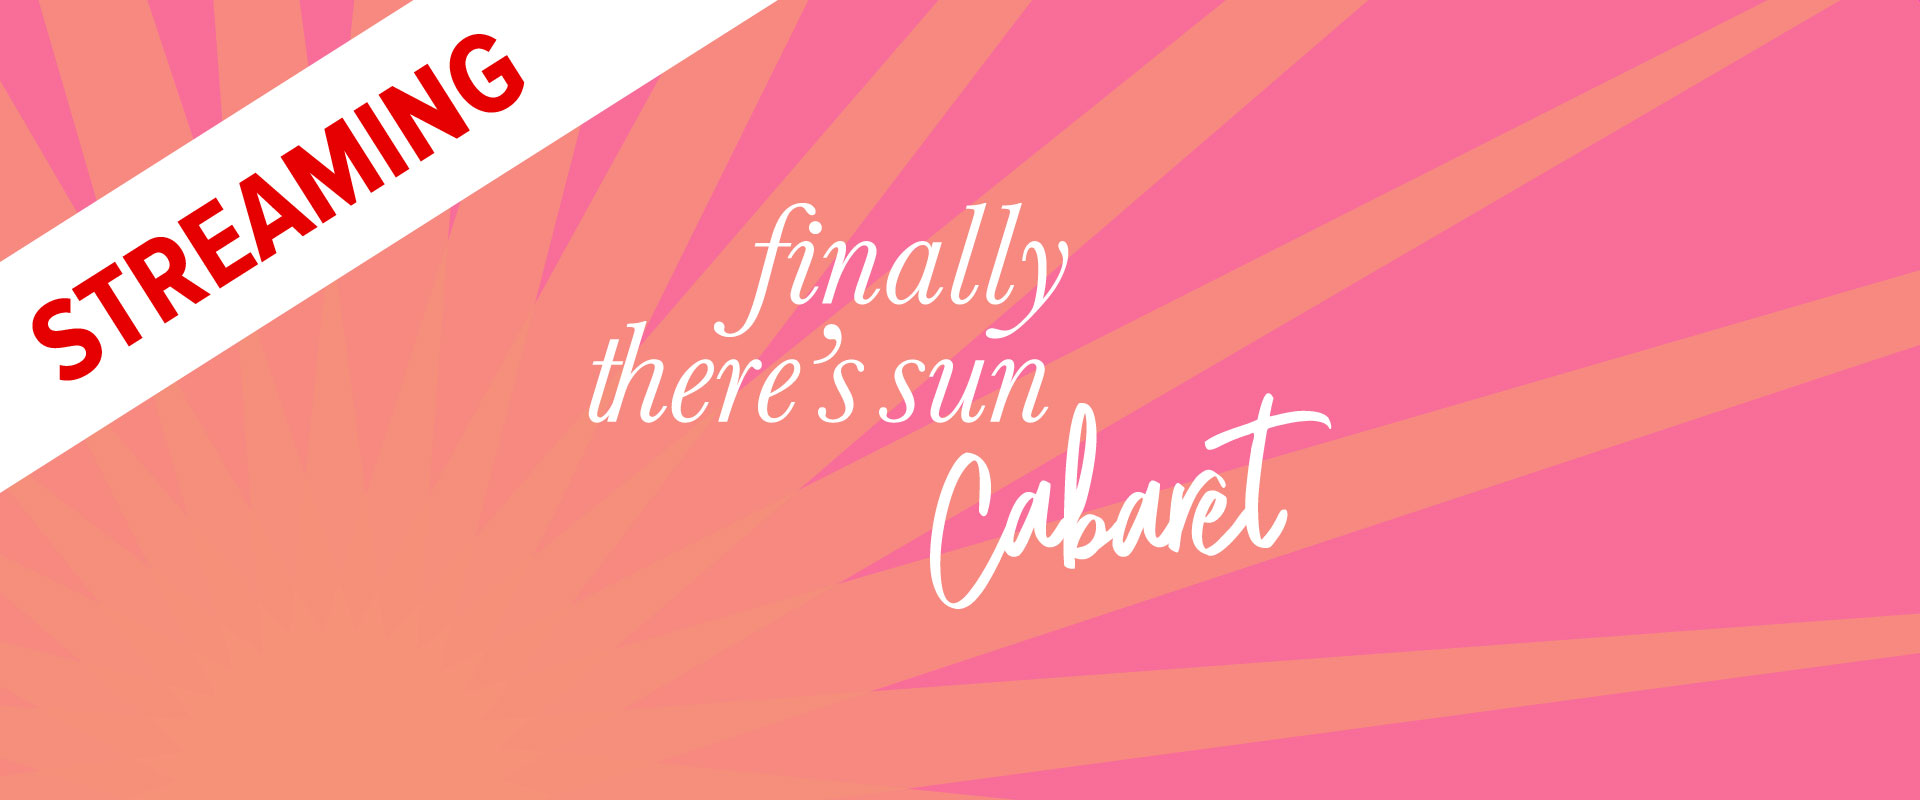 Wordmark image of Finally There's Sun cabaret